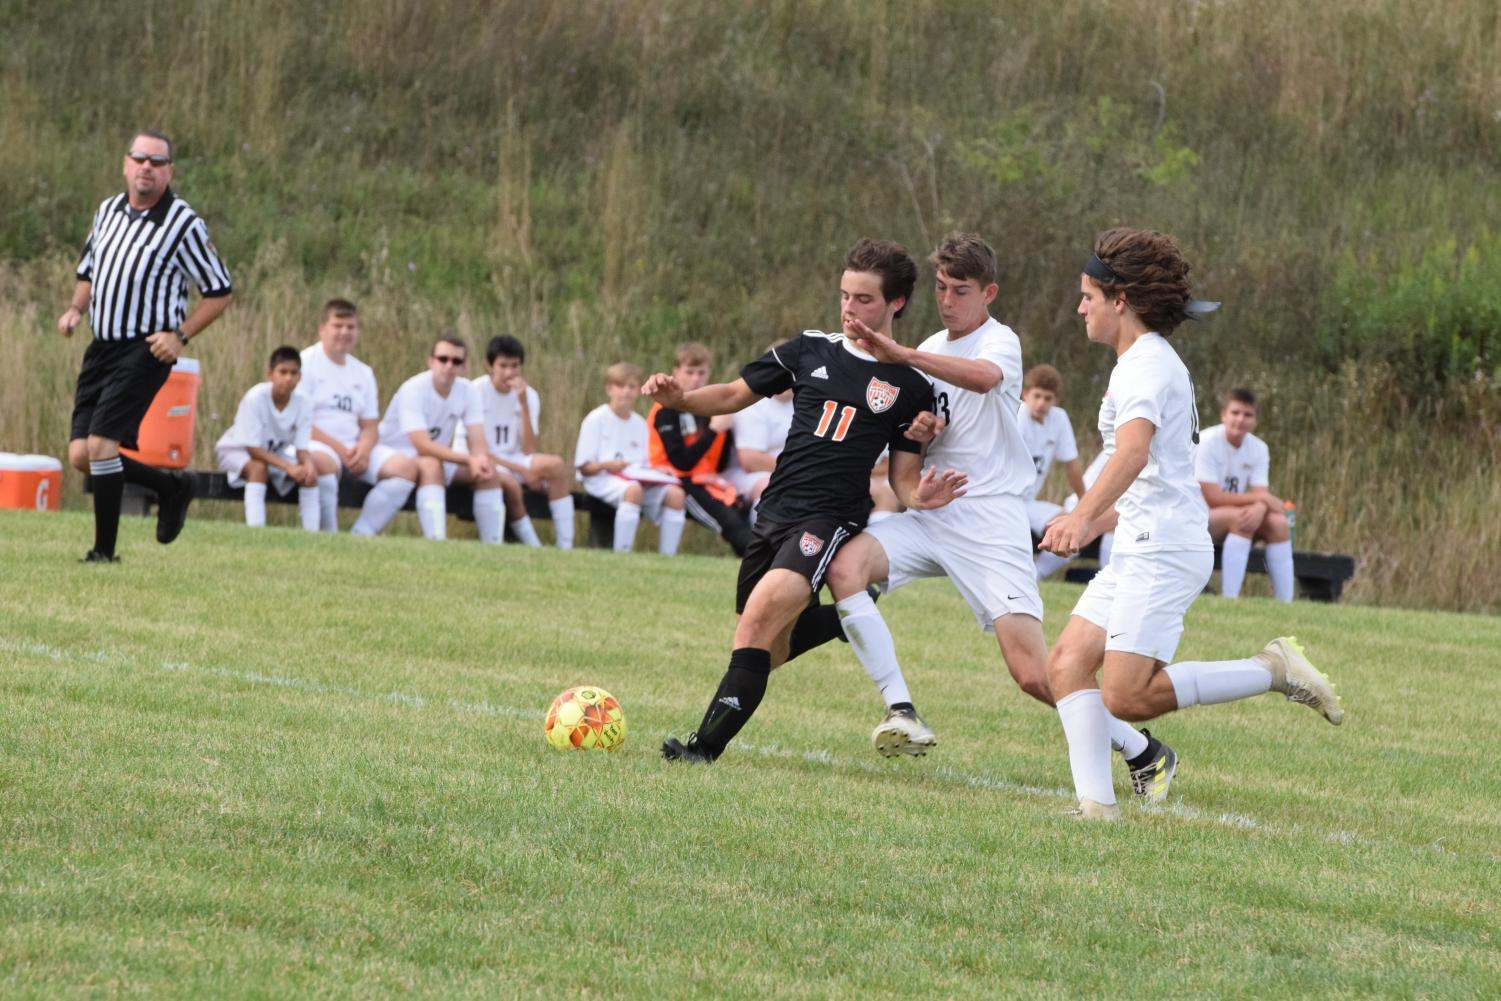 Daniel Parker taking a contested shot on goal.